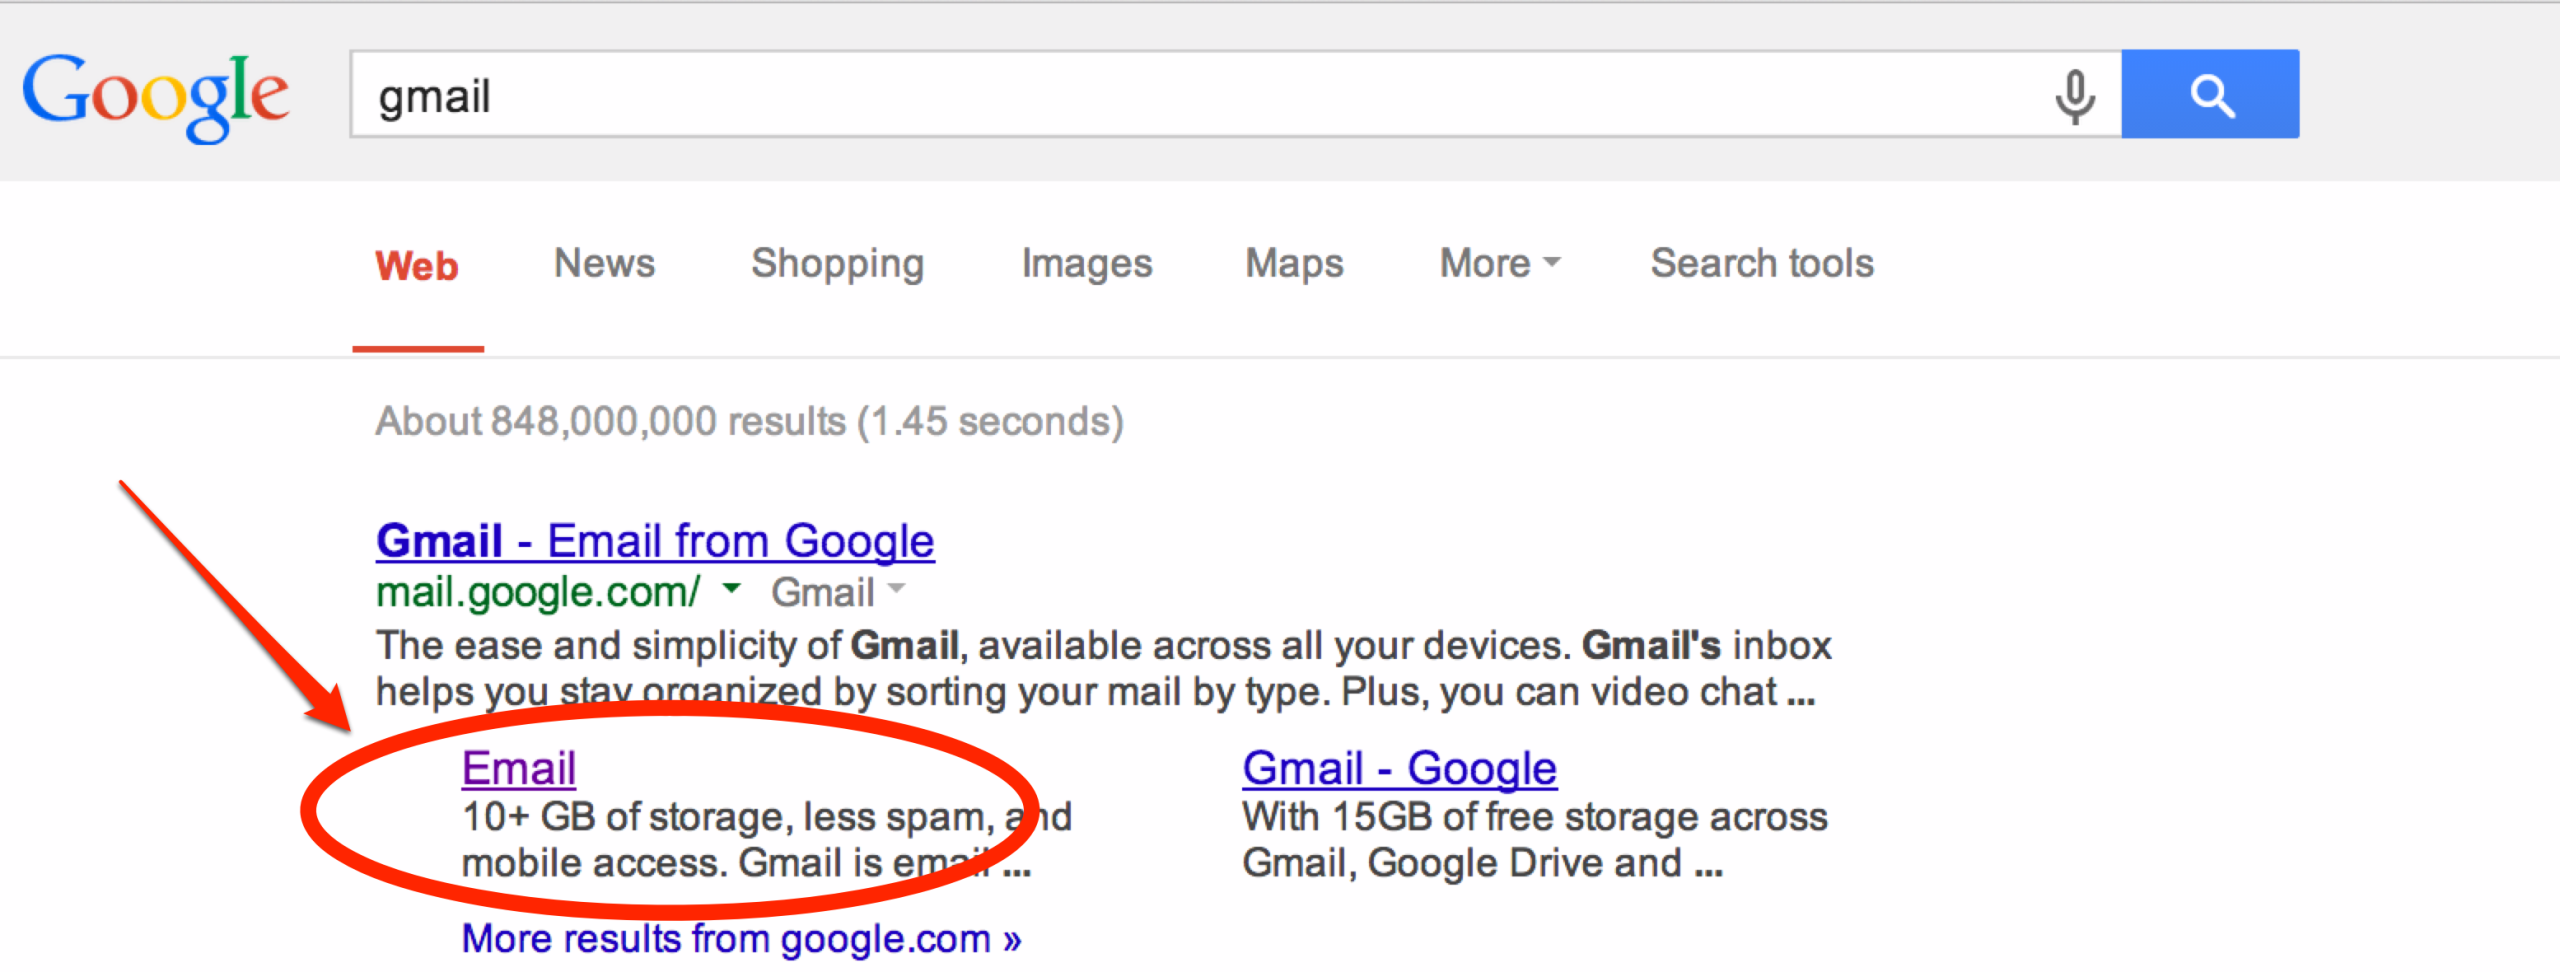 googlegmail glitch thousands of emails was sent to one